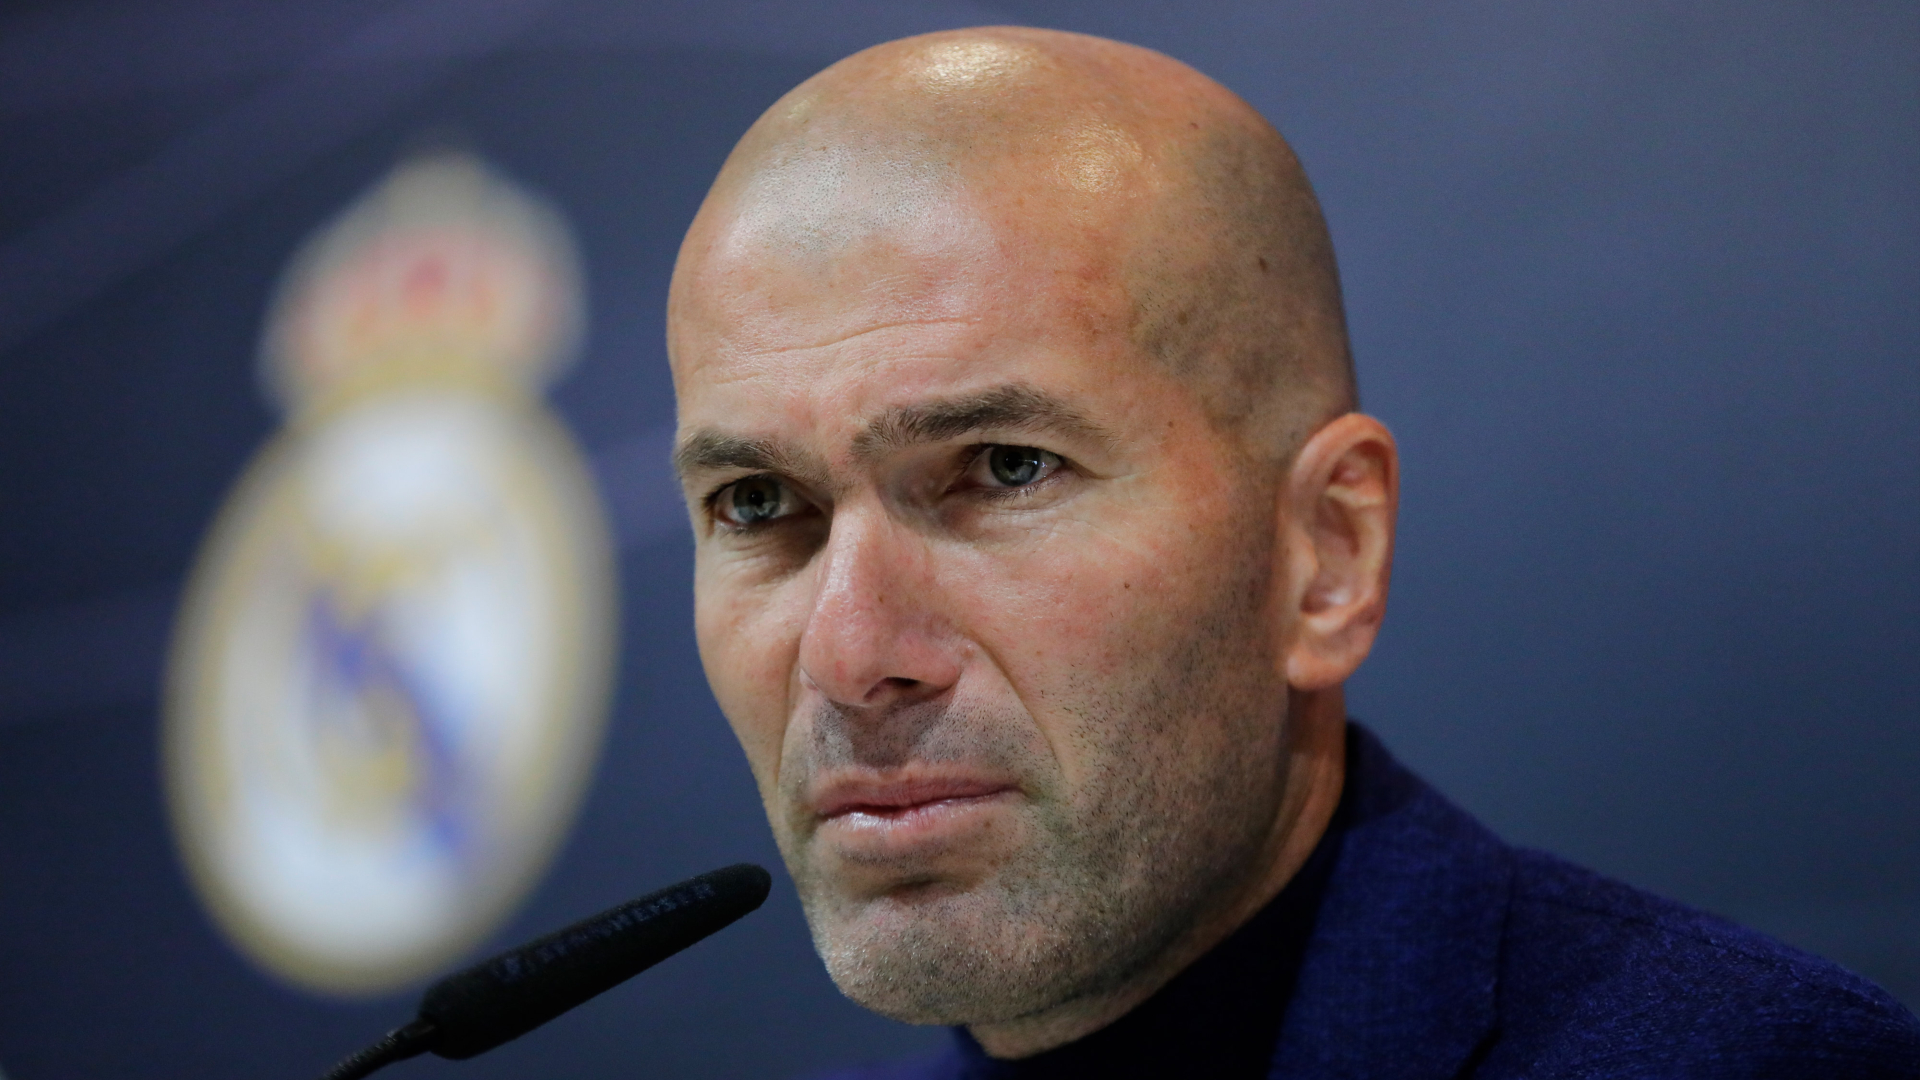 Zidane will leave Madrid at the end of the season after informing Real of his decision